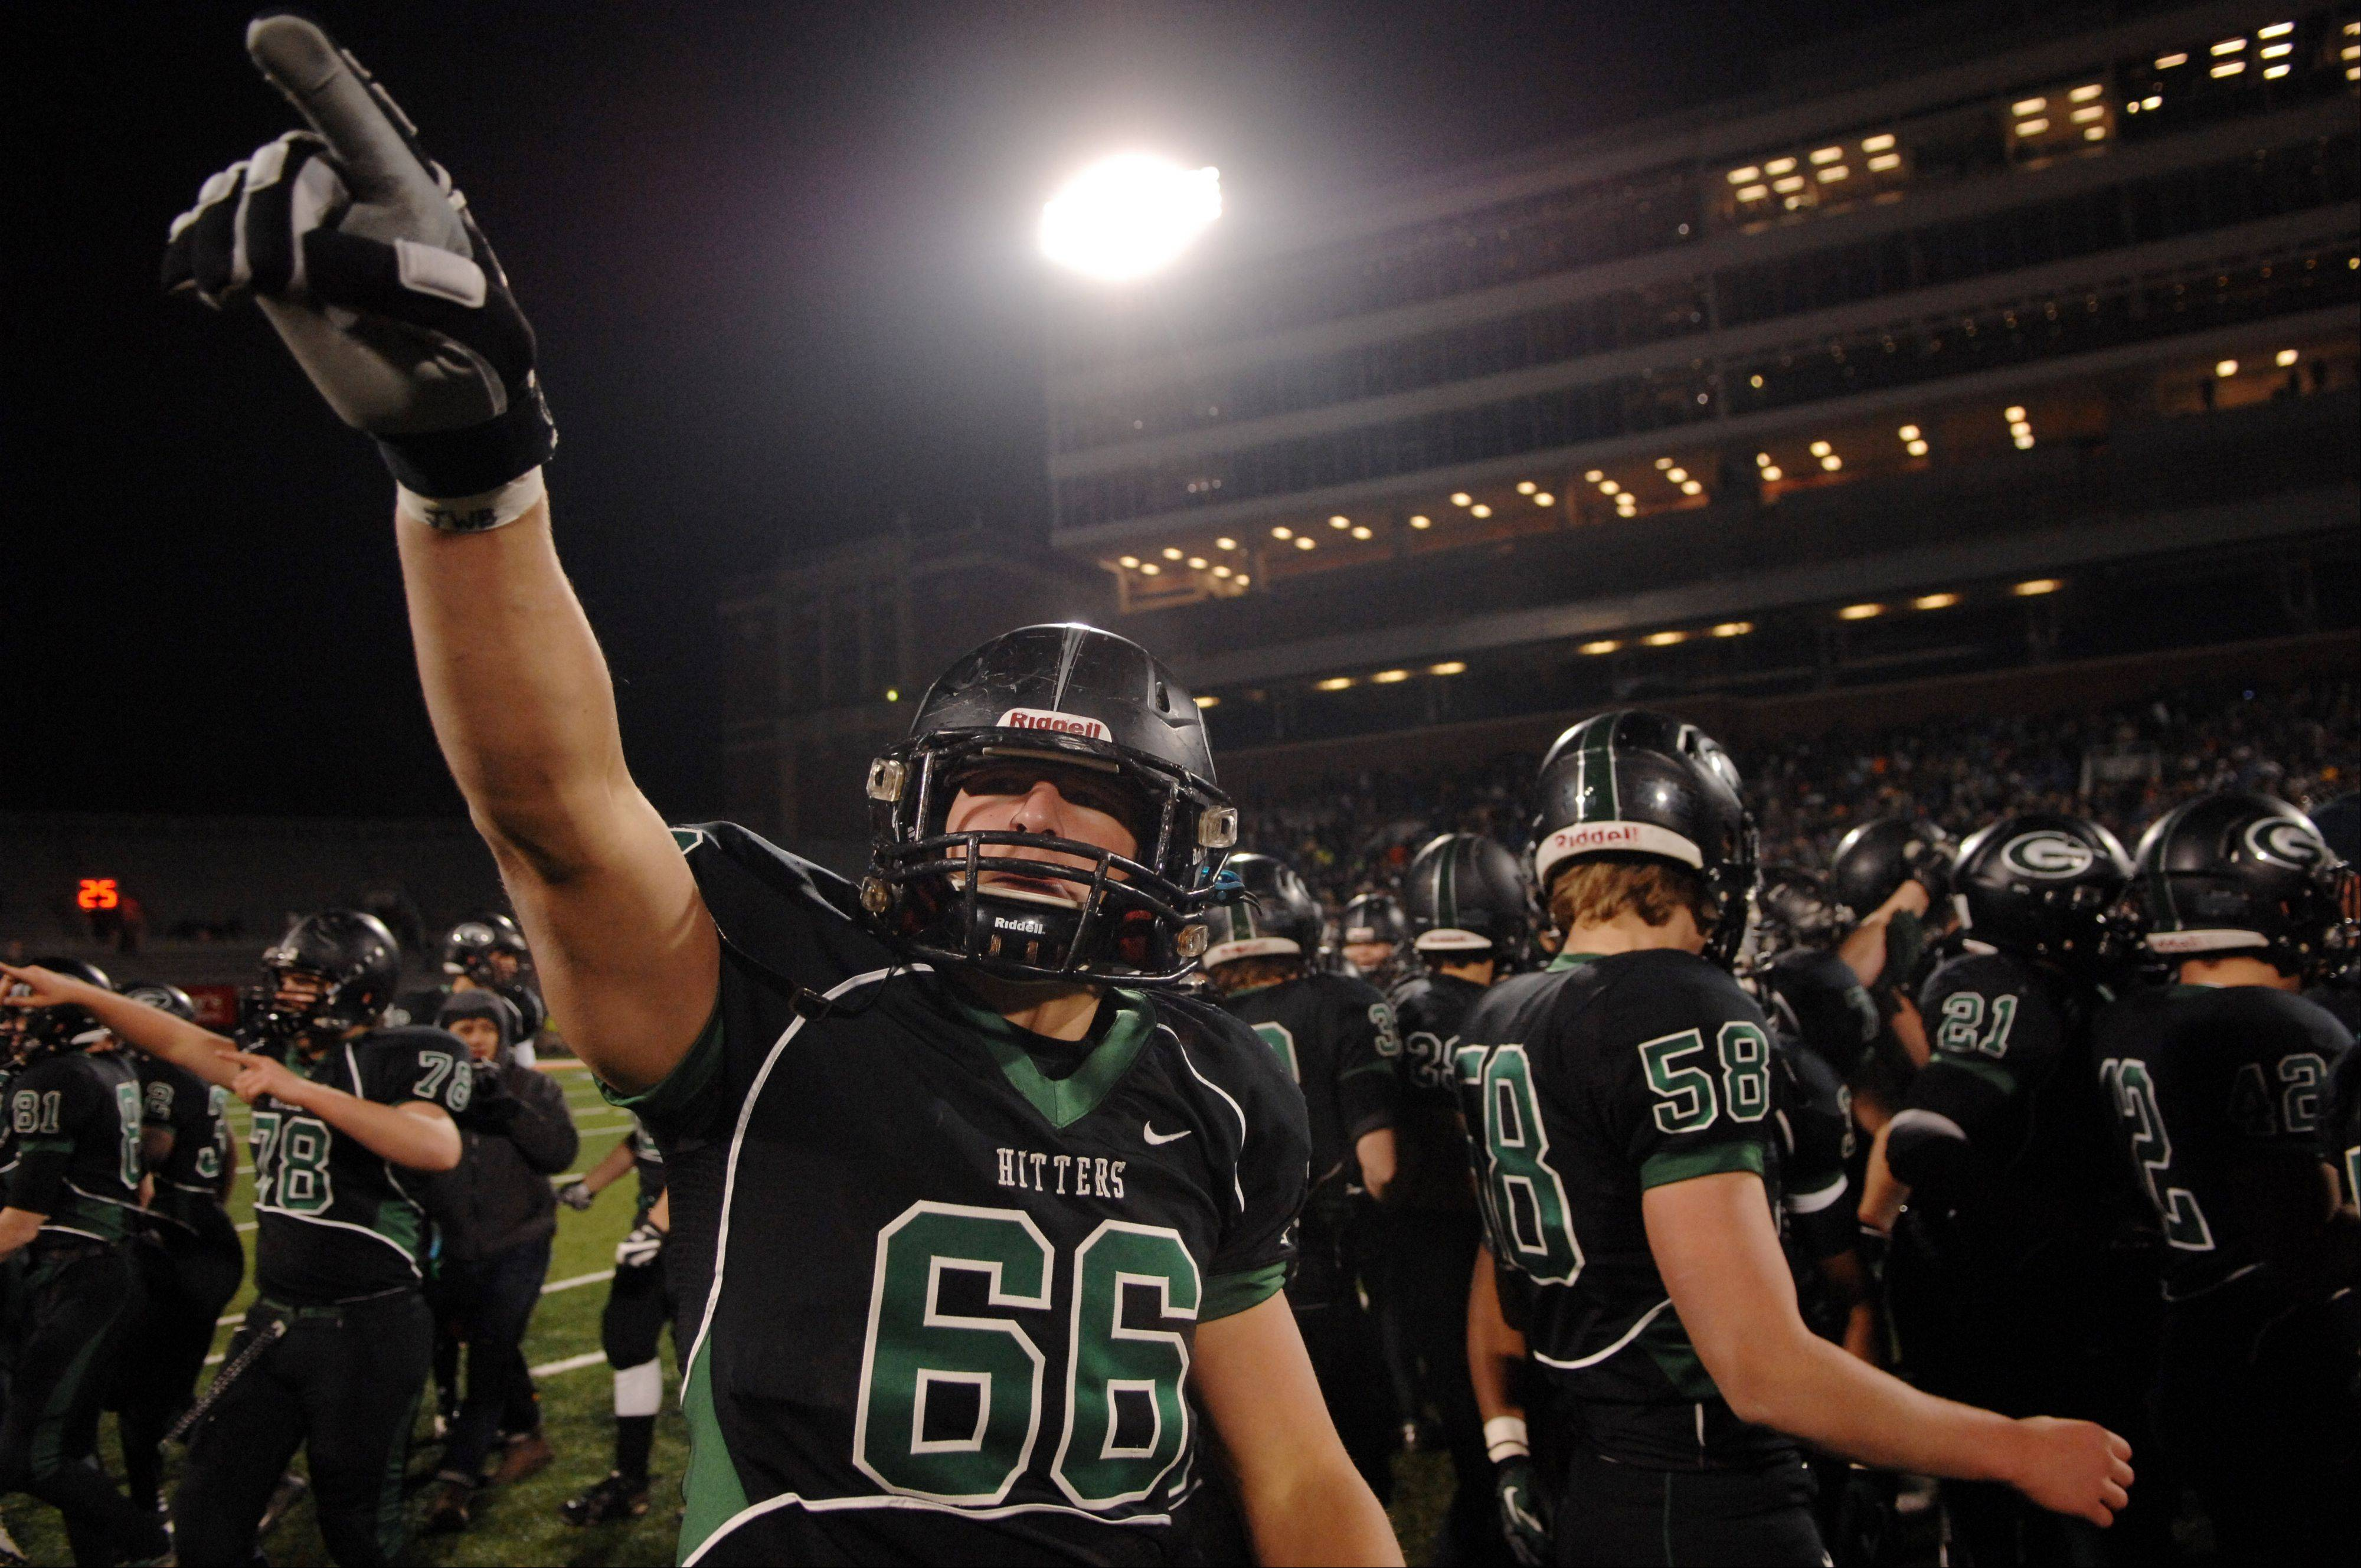 Glenbard West offensive linesman Max Bruere (66) salutes the crowd as he and the Hilltoppers celebrate their win over Lincoln-Way East during Saturday�s Class 7A state title game at Memorial Stadium in Champaign.